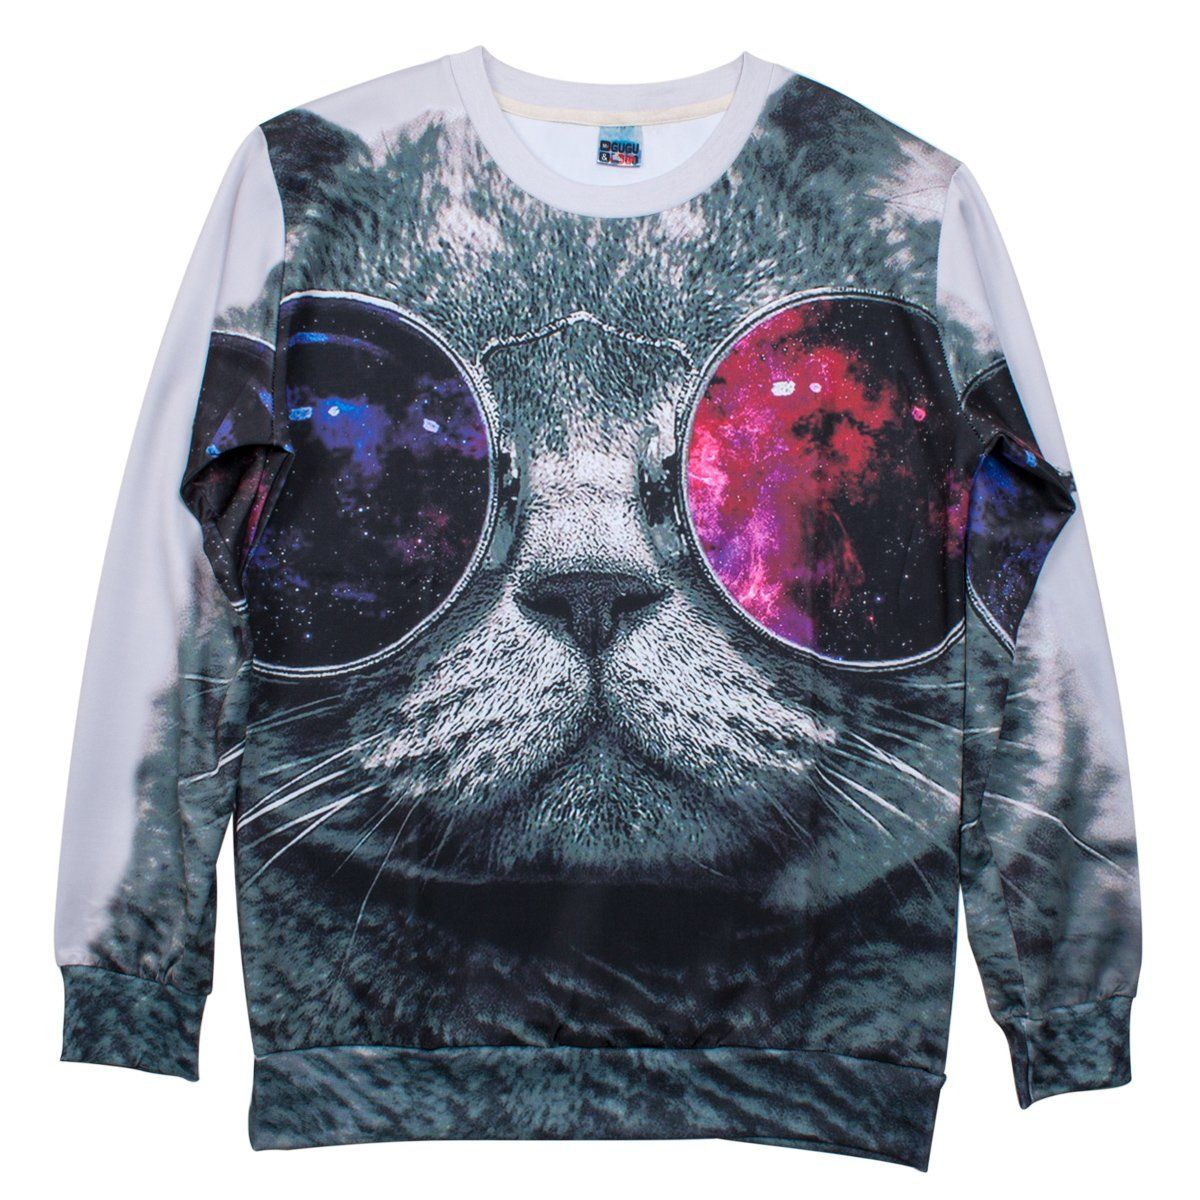 3d Cool Cat Animals Sweatshirts Space Print Pullovers Jumper T Shirt Tee Amazon Co Uk Clothing Sweatshirts Galaxy Sweatshirt Print Pullover [ 1200 x 1200 Pixel ]